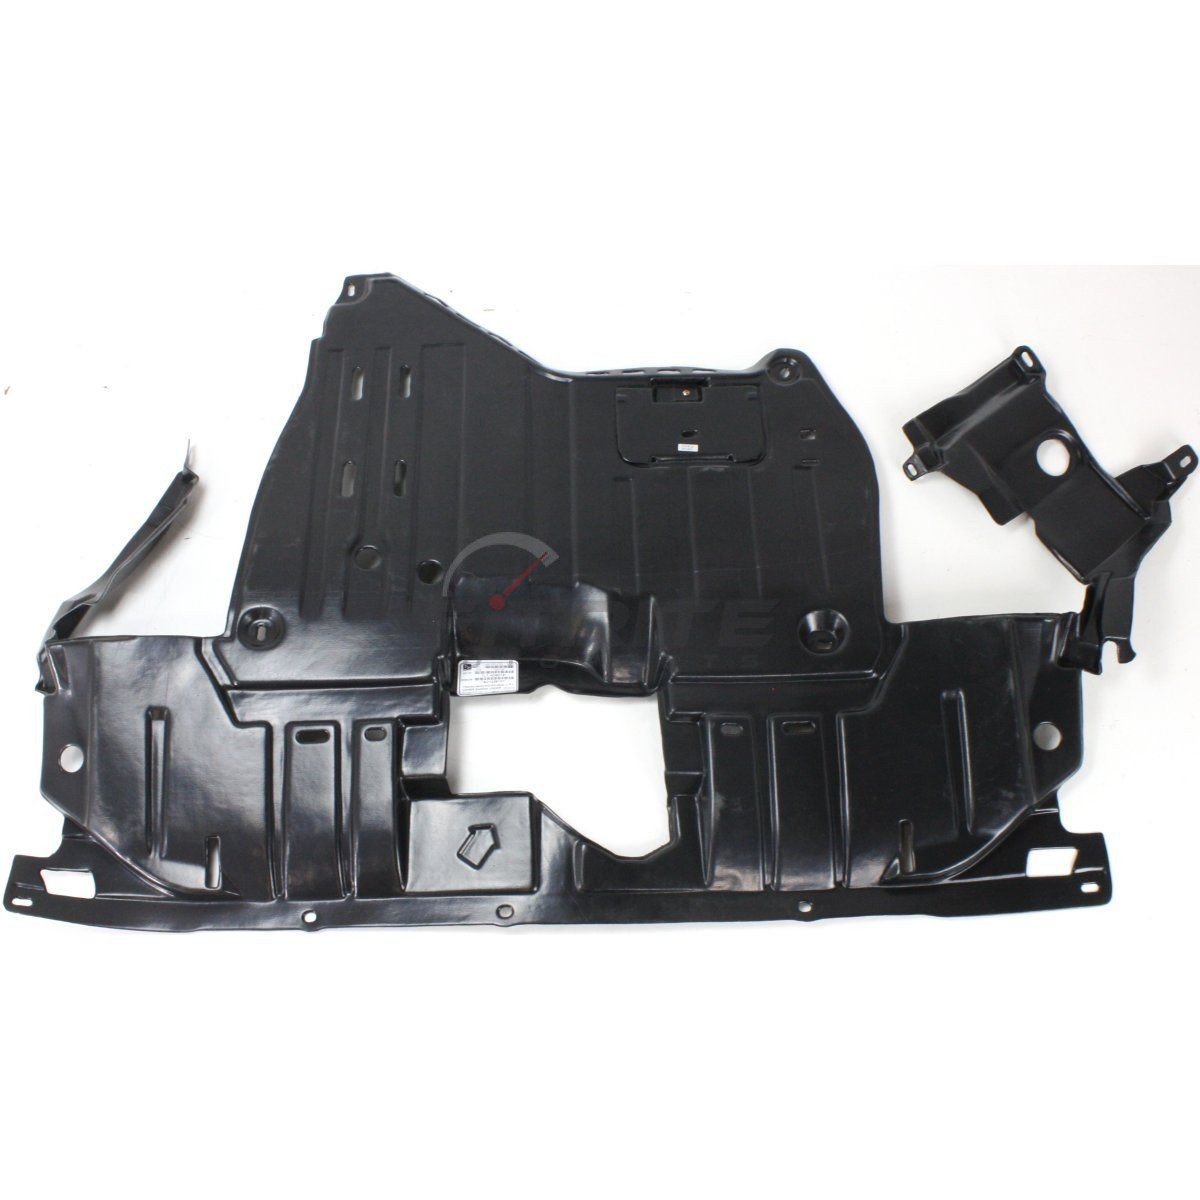 NEW FRONT ENGINE SPLASH SHIELD FOR 2004 ACURA TSX